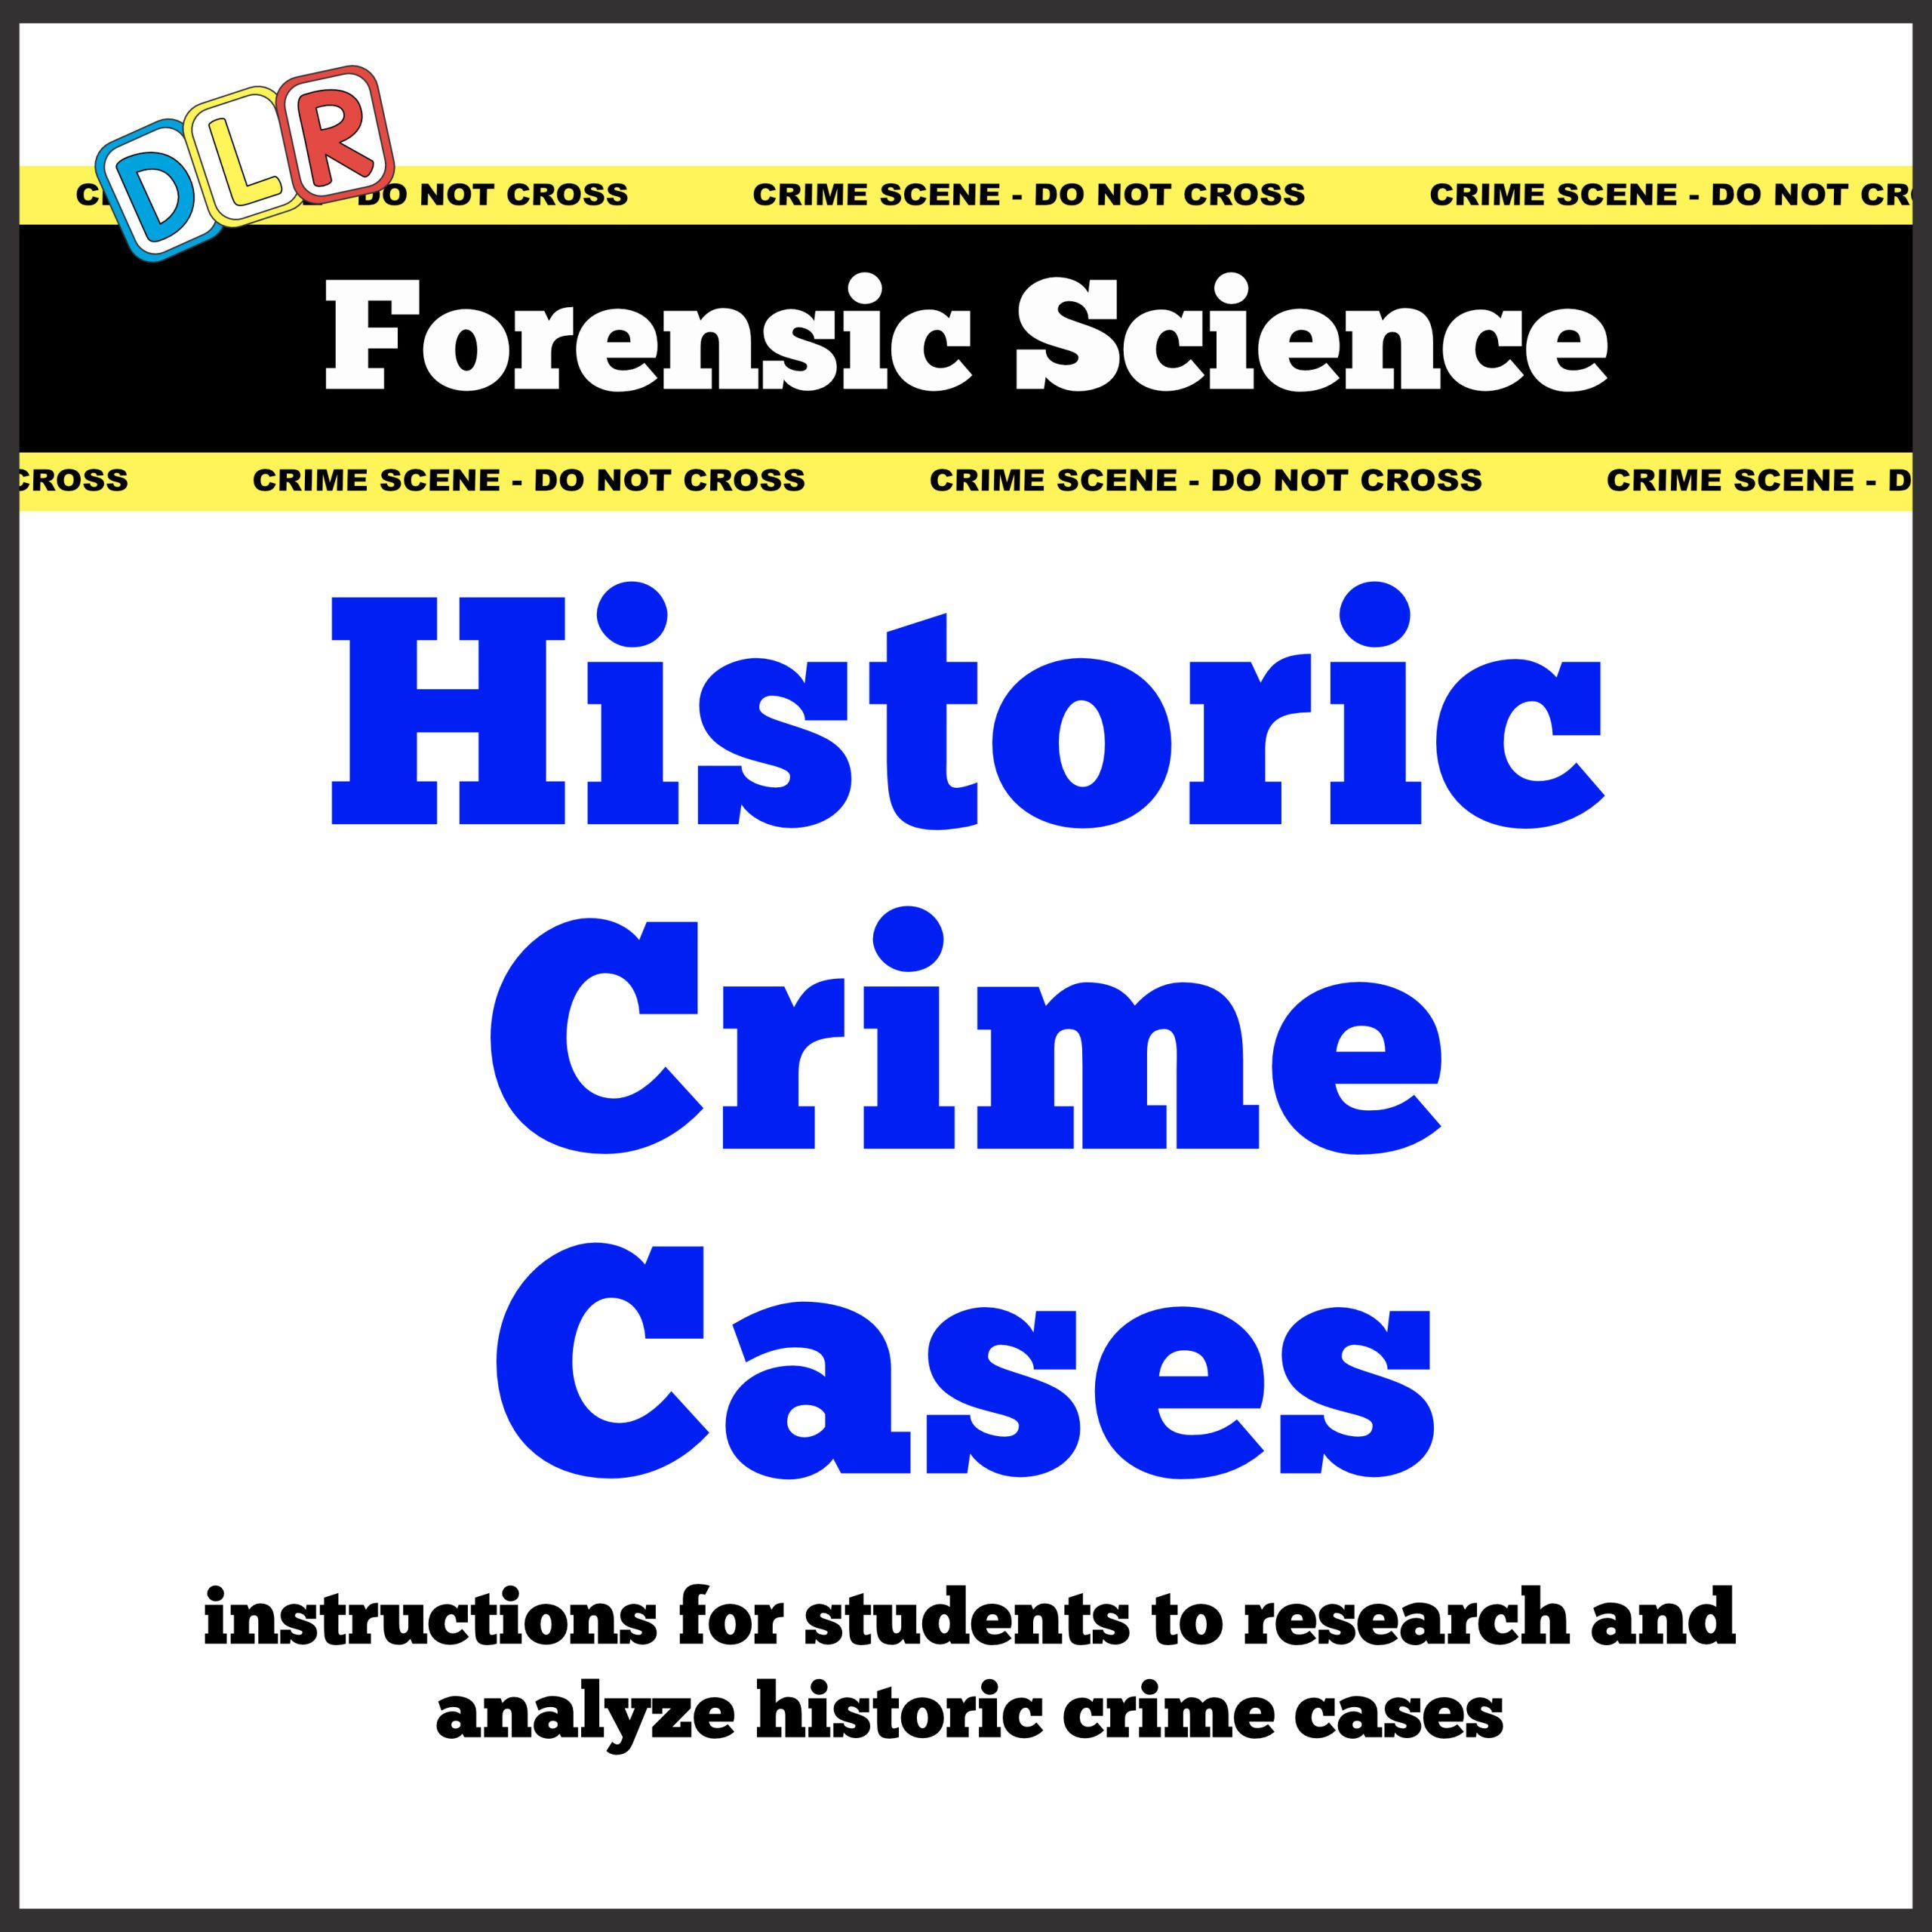 worksheet Forensic Science Case Study Worksheet education digital downloads preschool worksheets forensic science students research explain and analyze historic cases assignment instructions include specifics for case summ